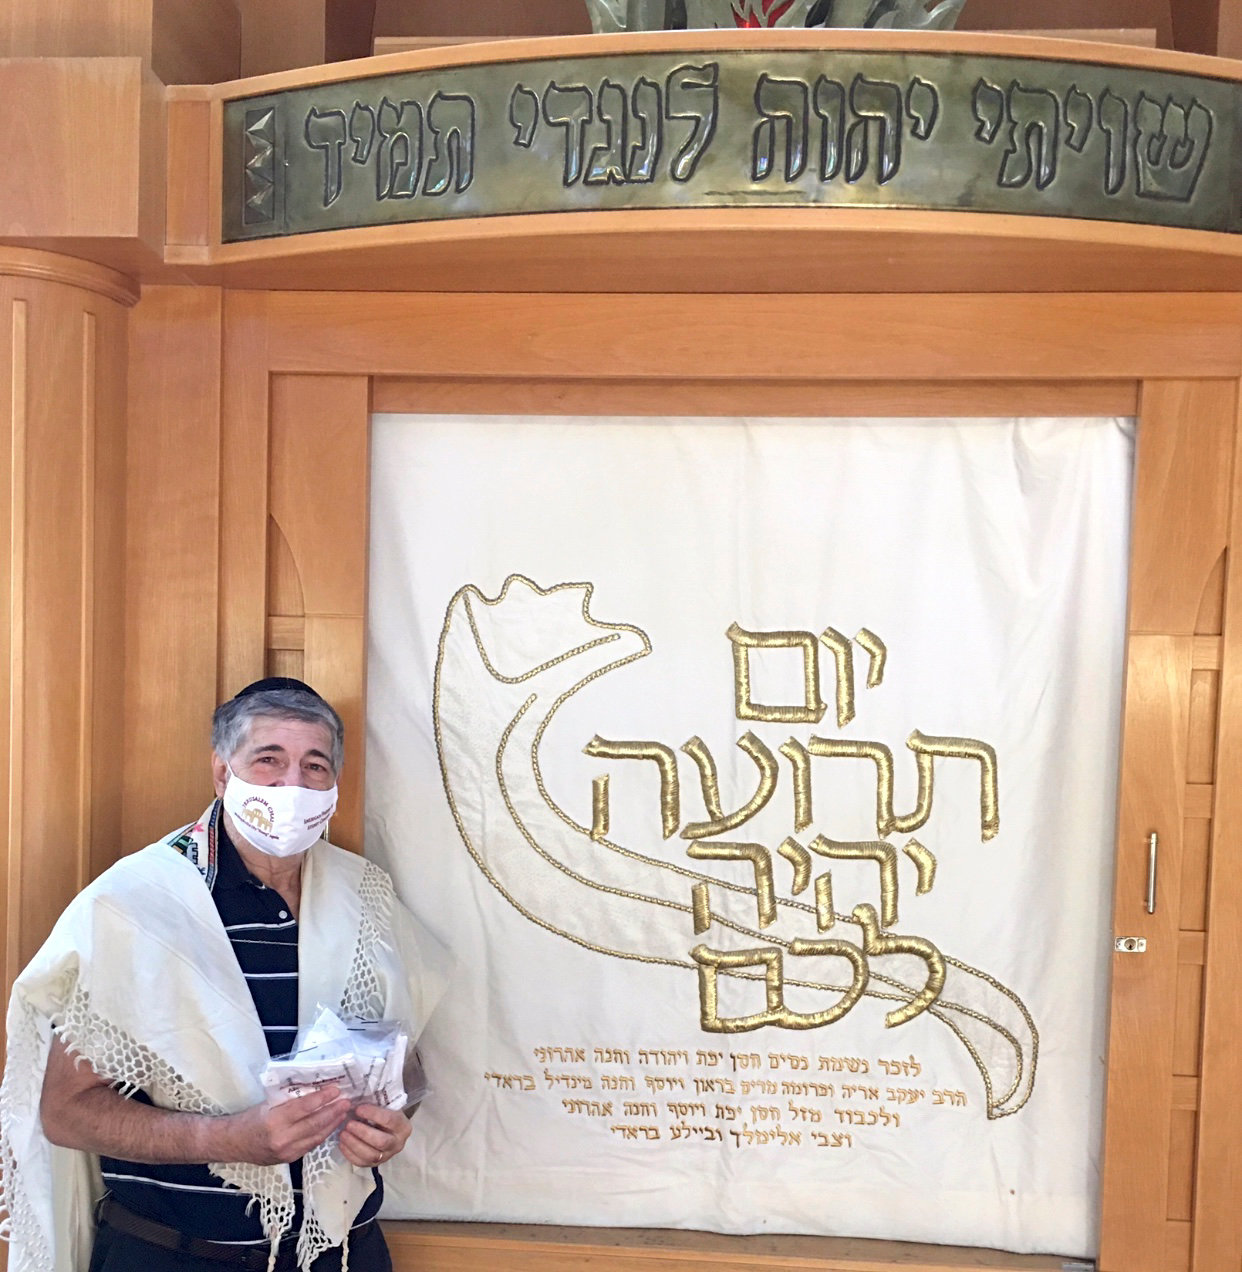 Dr. Paul Brody with Gold Ateret Cohanim masks at the Great Neck Synagogue.